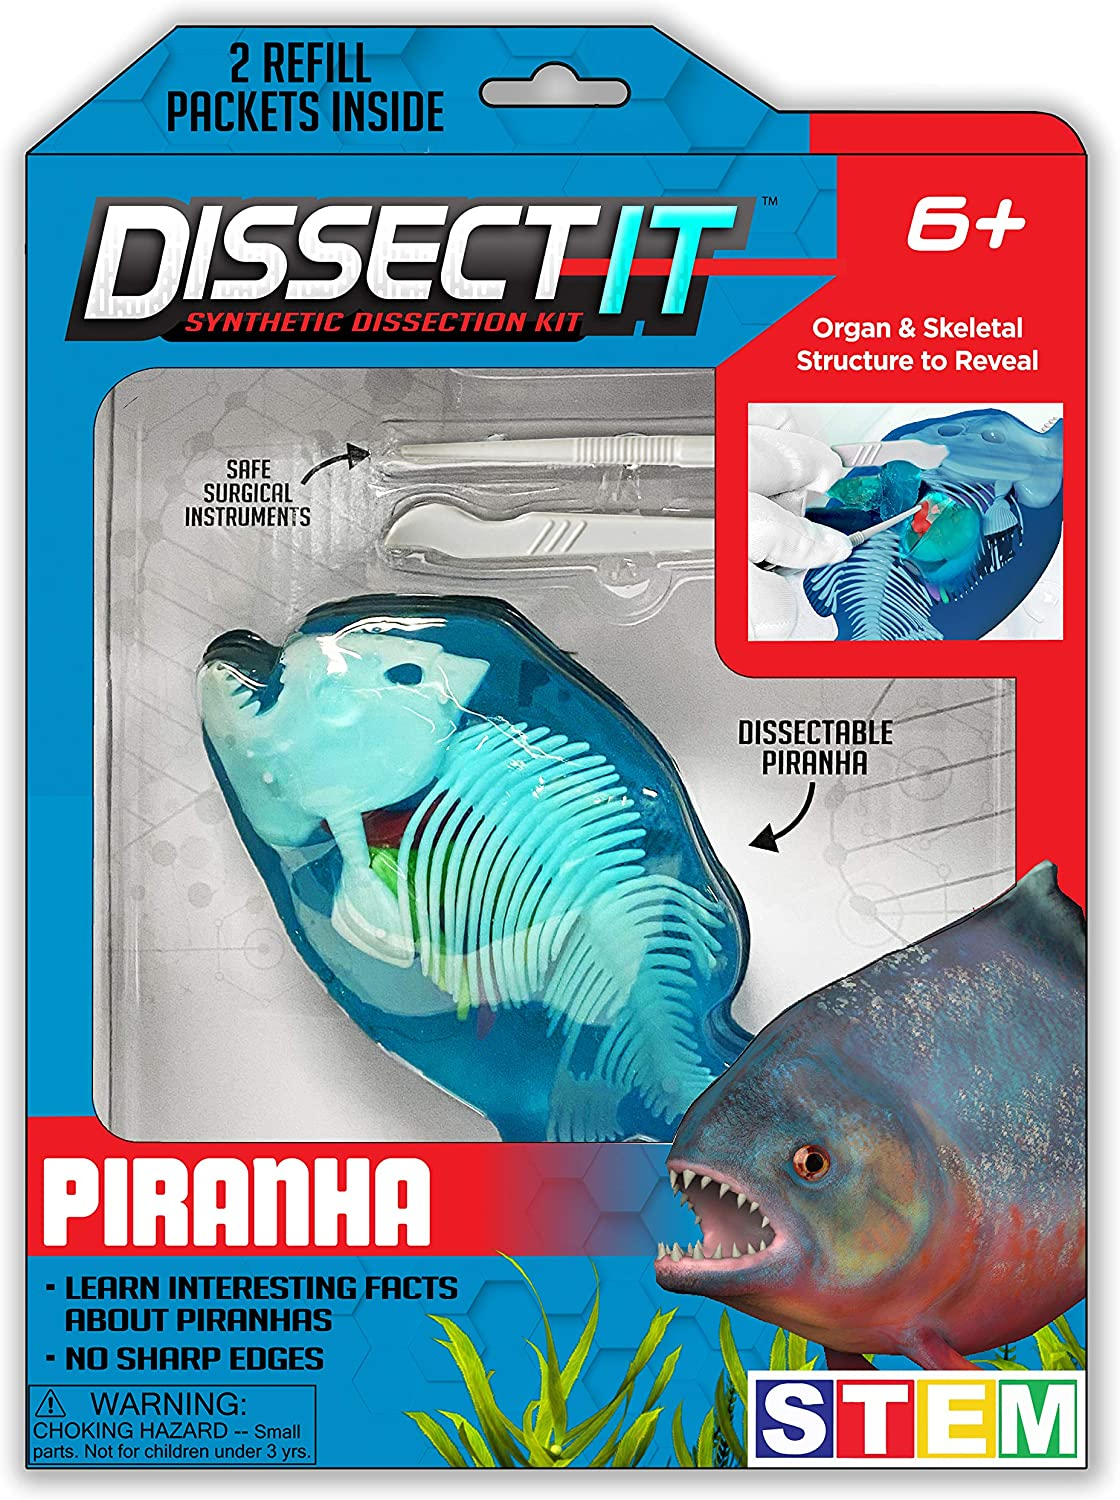 Top Secret Toys Dissect-It Simulated Synthetic Lab Dissection STEM Toy   Kids Home Learning Science Project, Great for Young Scientists! - Piranha